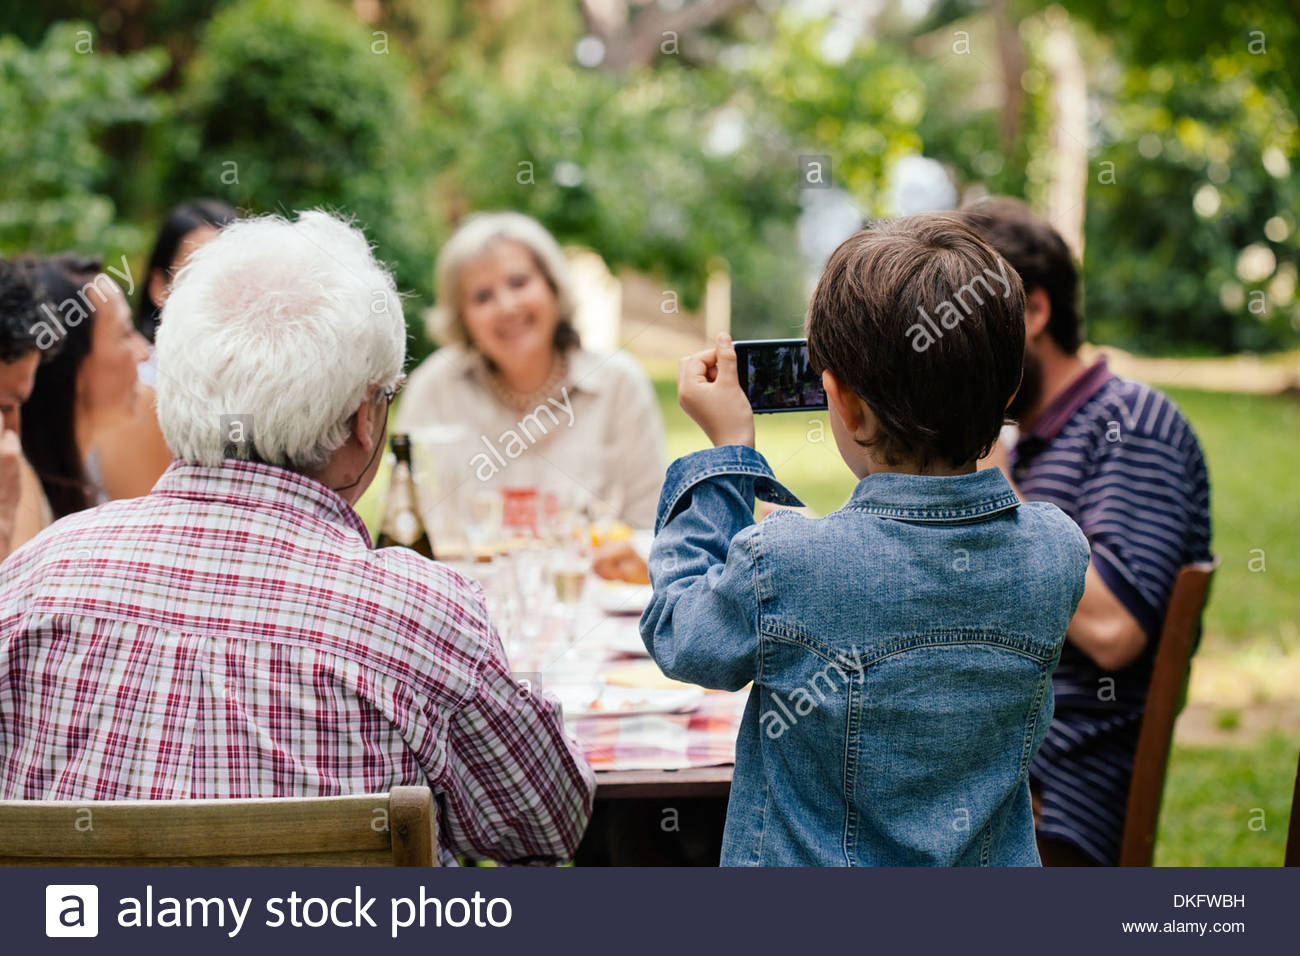 Boy photographing family at outdoor meal - Stock Image